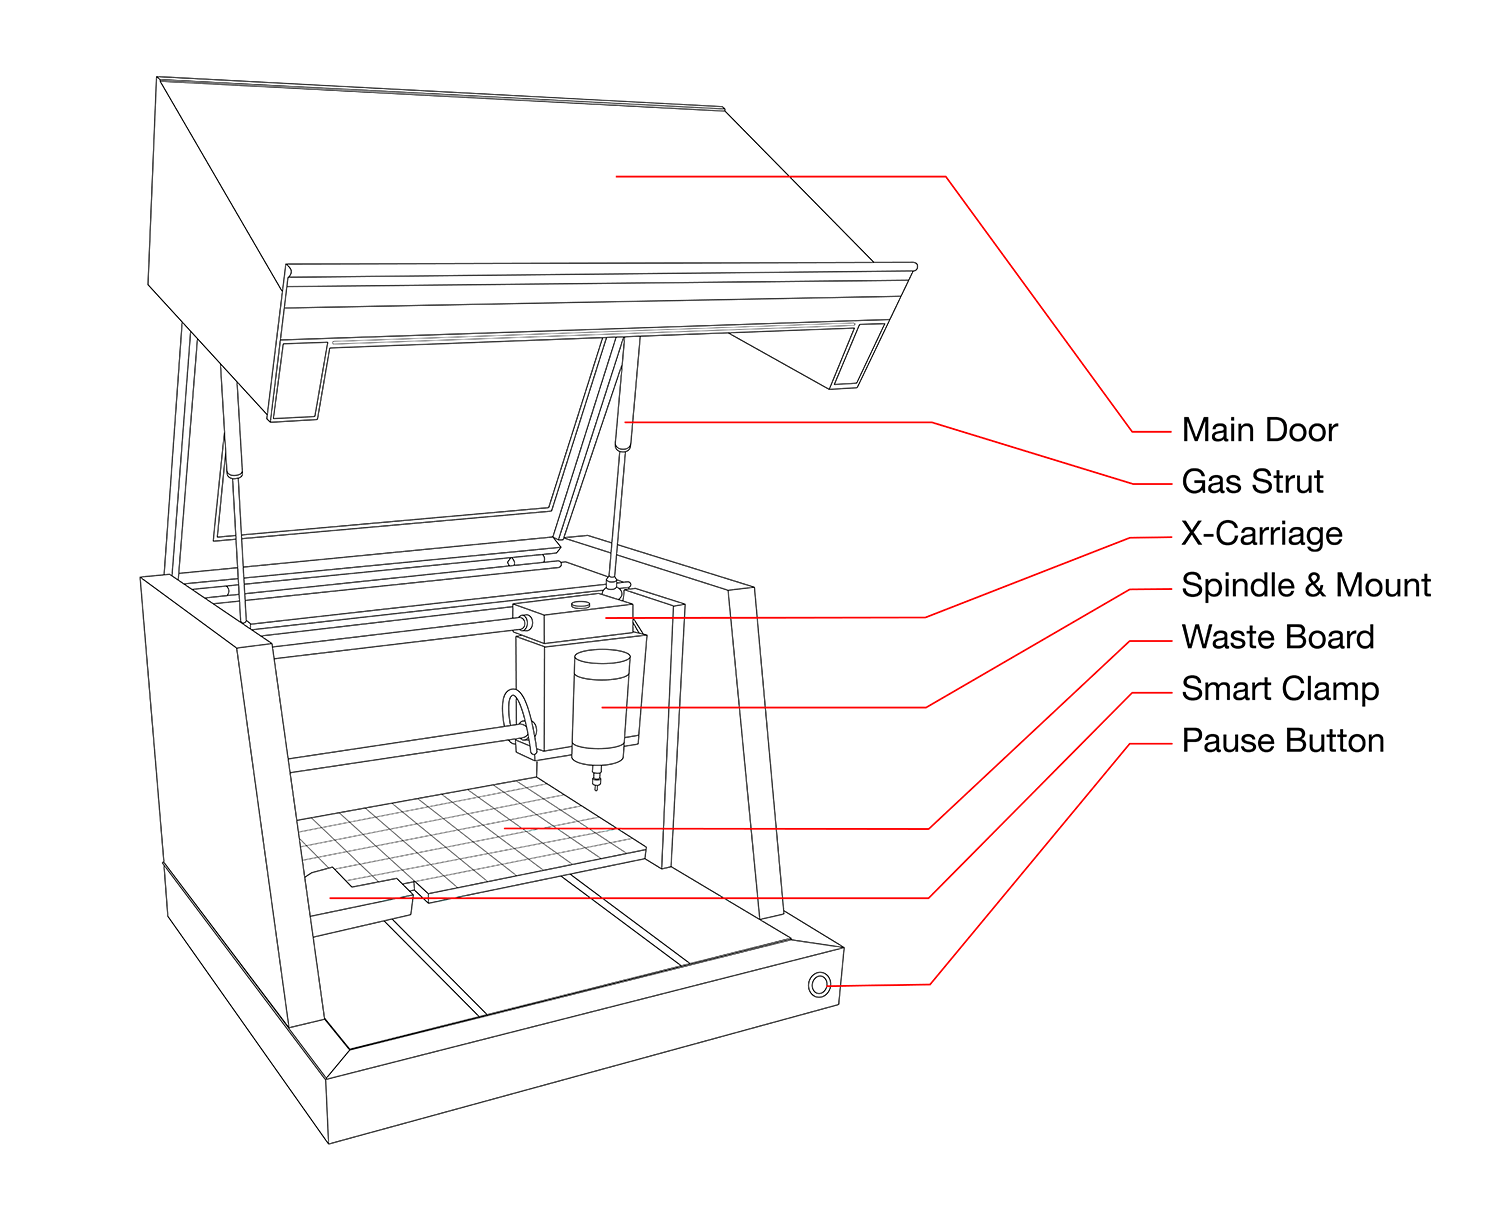 Carvey Manual: Machine Basics